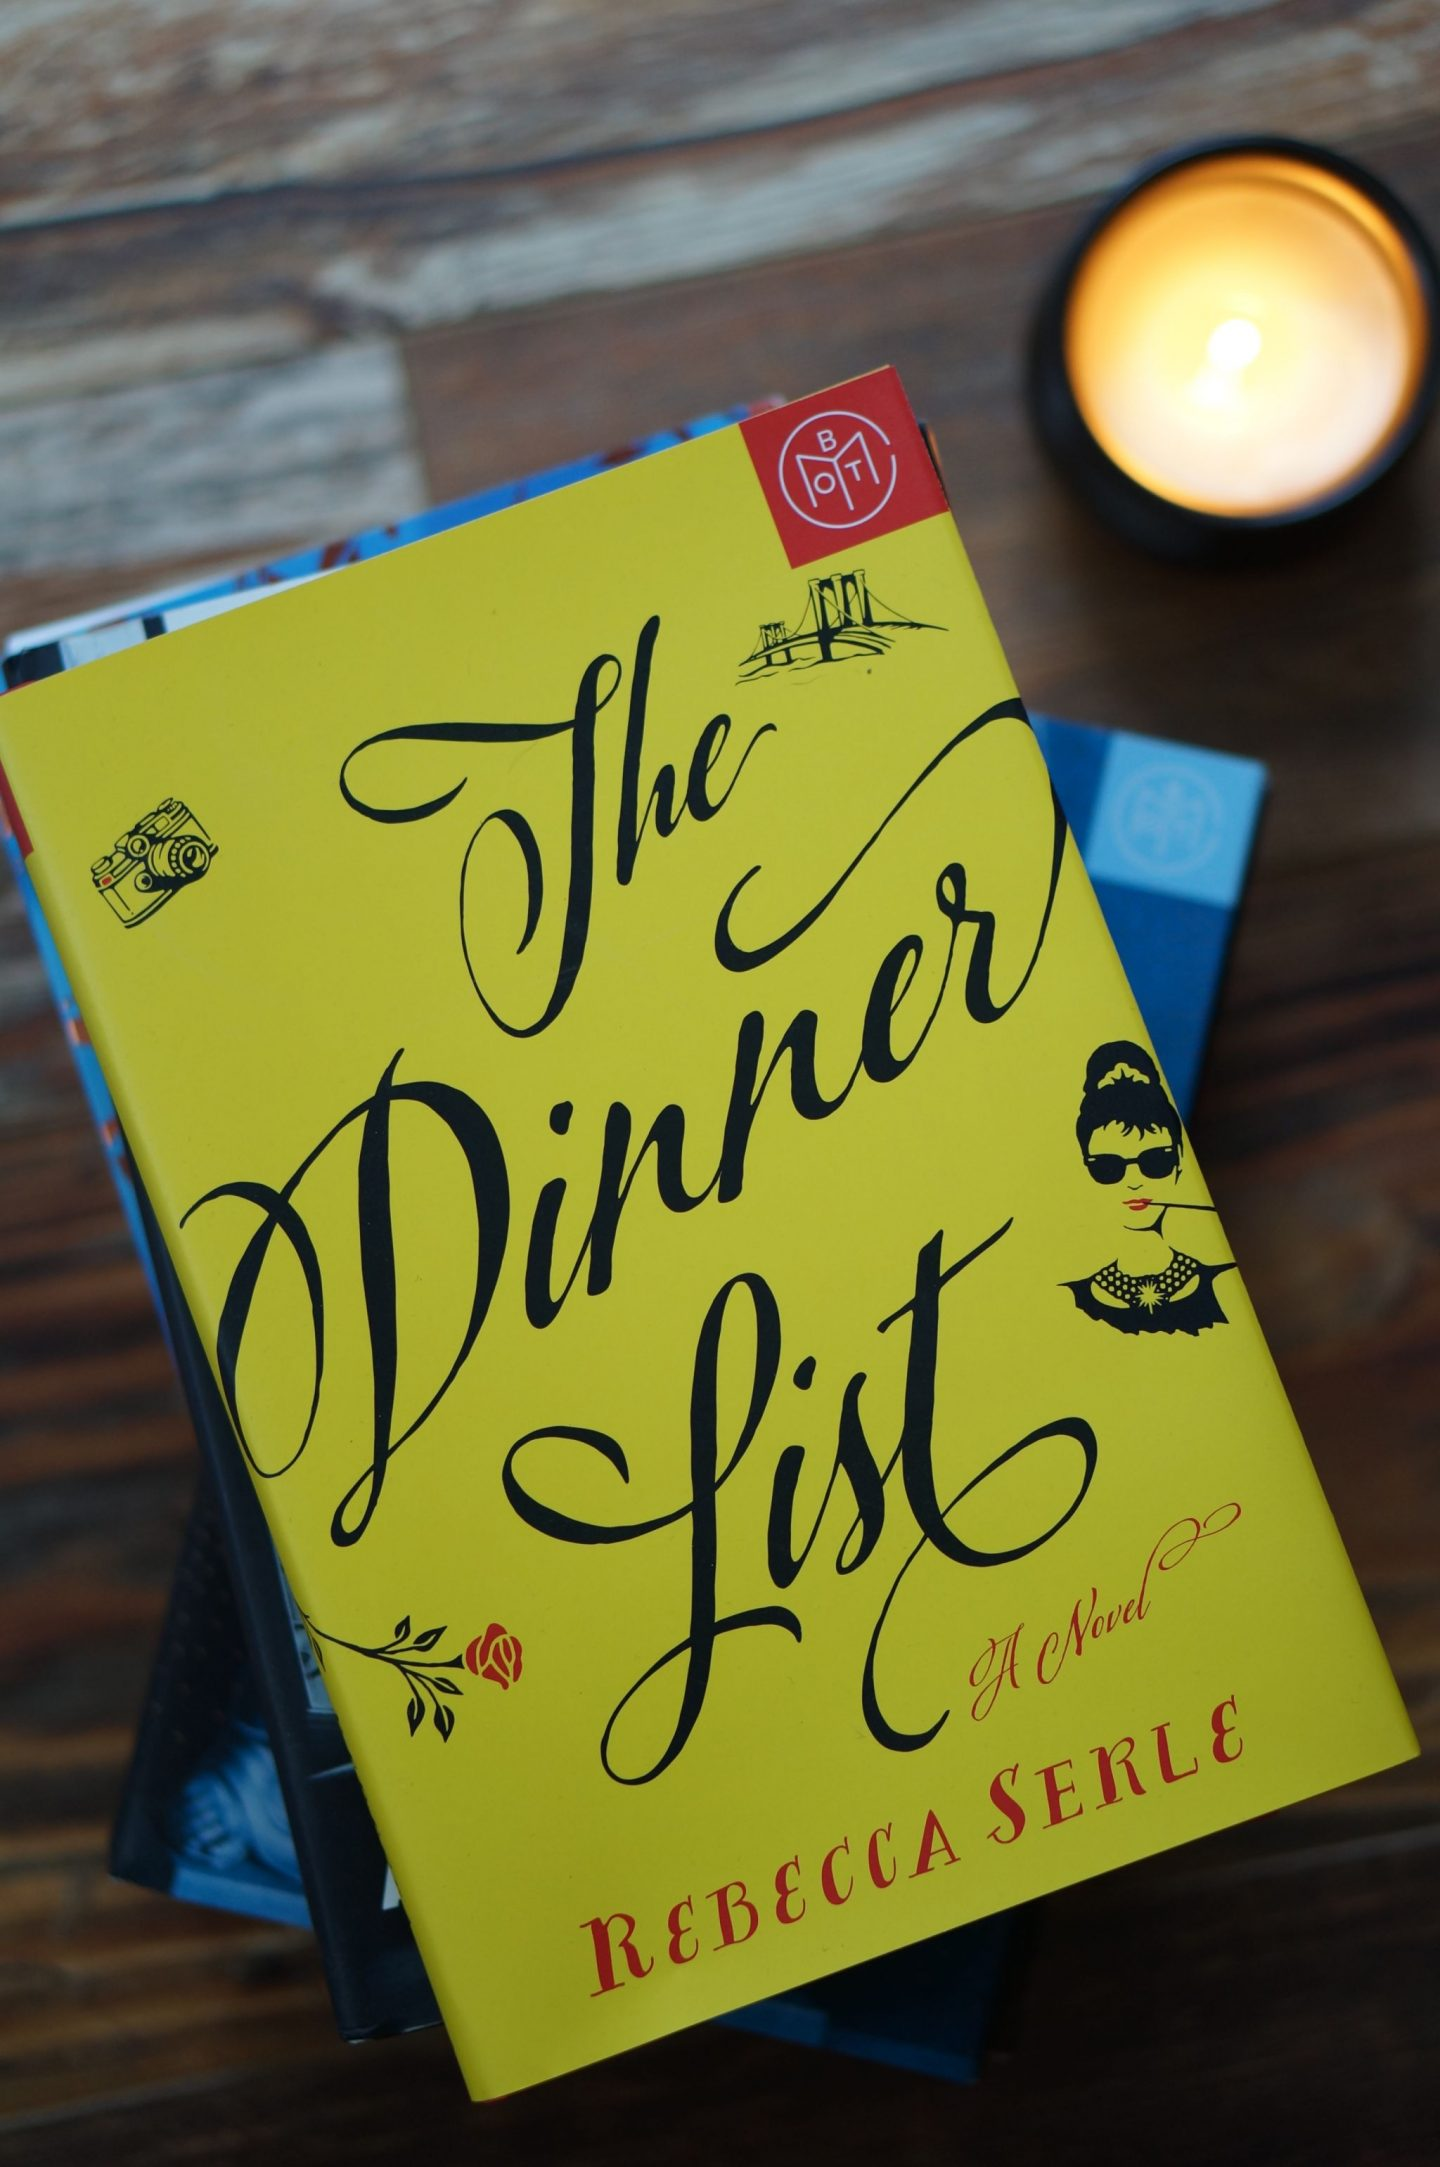 Popular North Carolina style blogger Rebecca Lately shares her long list of fall reads  If you need something new to read this fall, check it out!